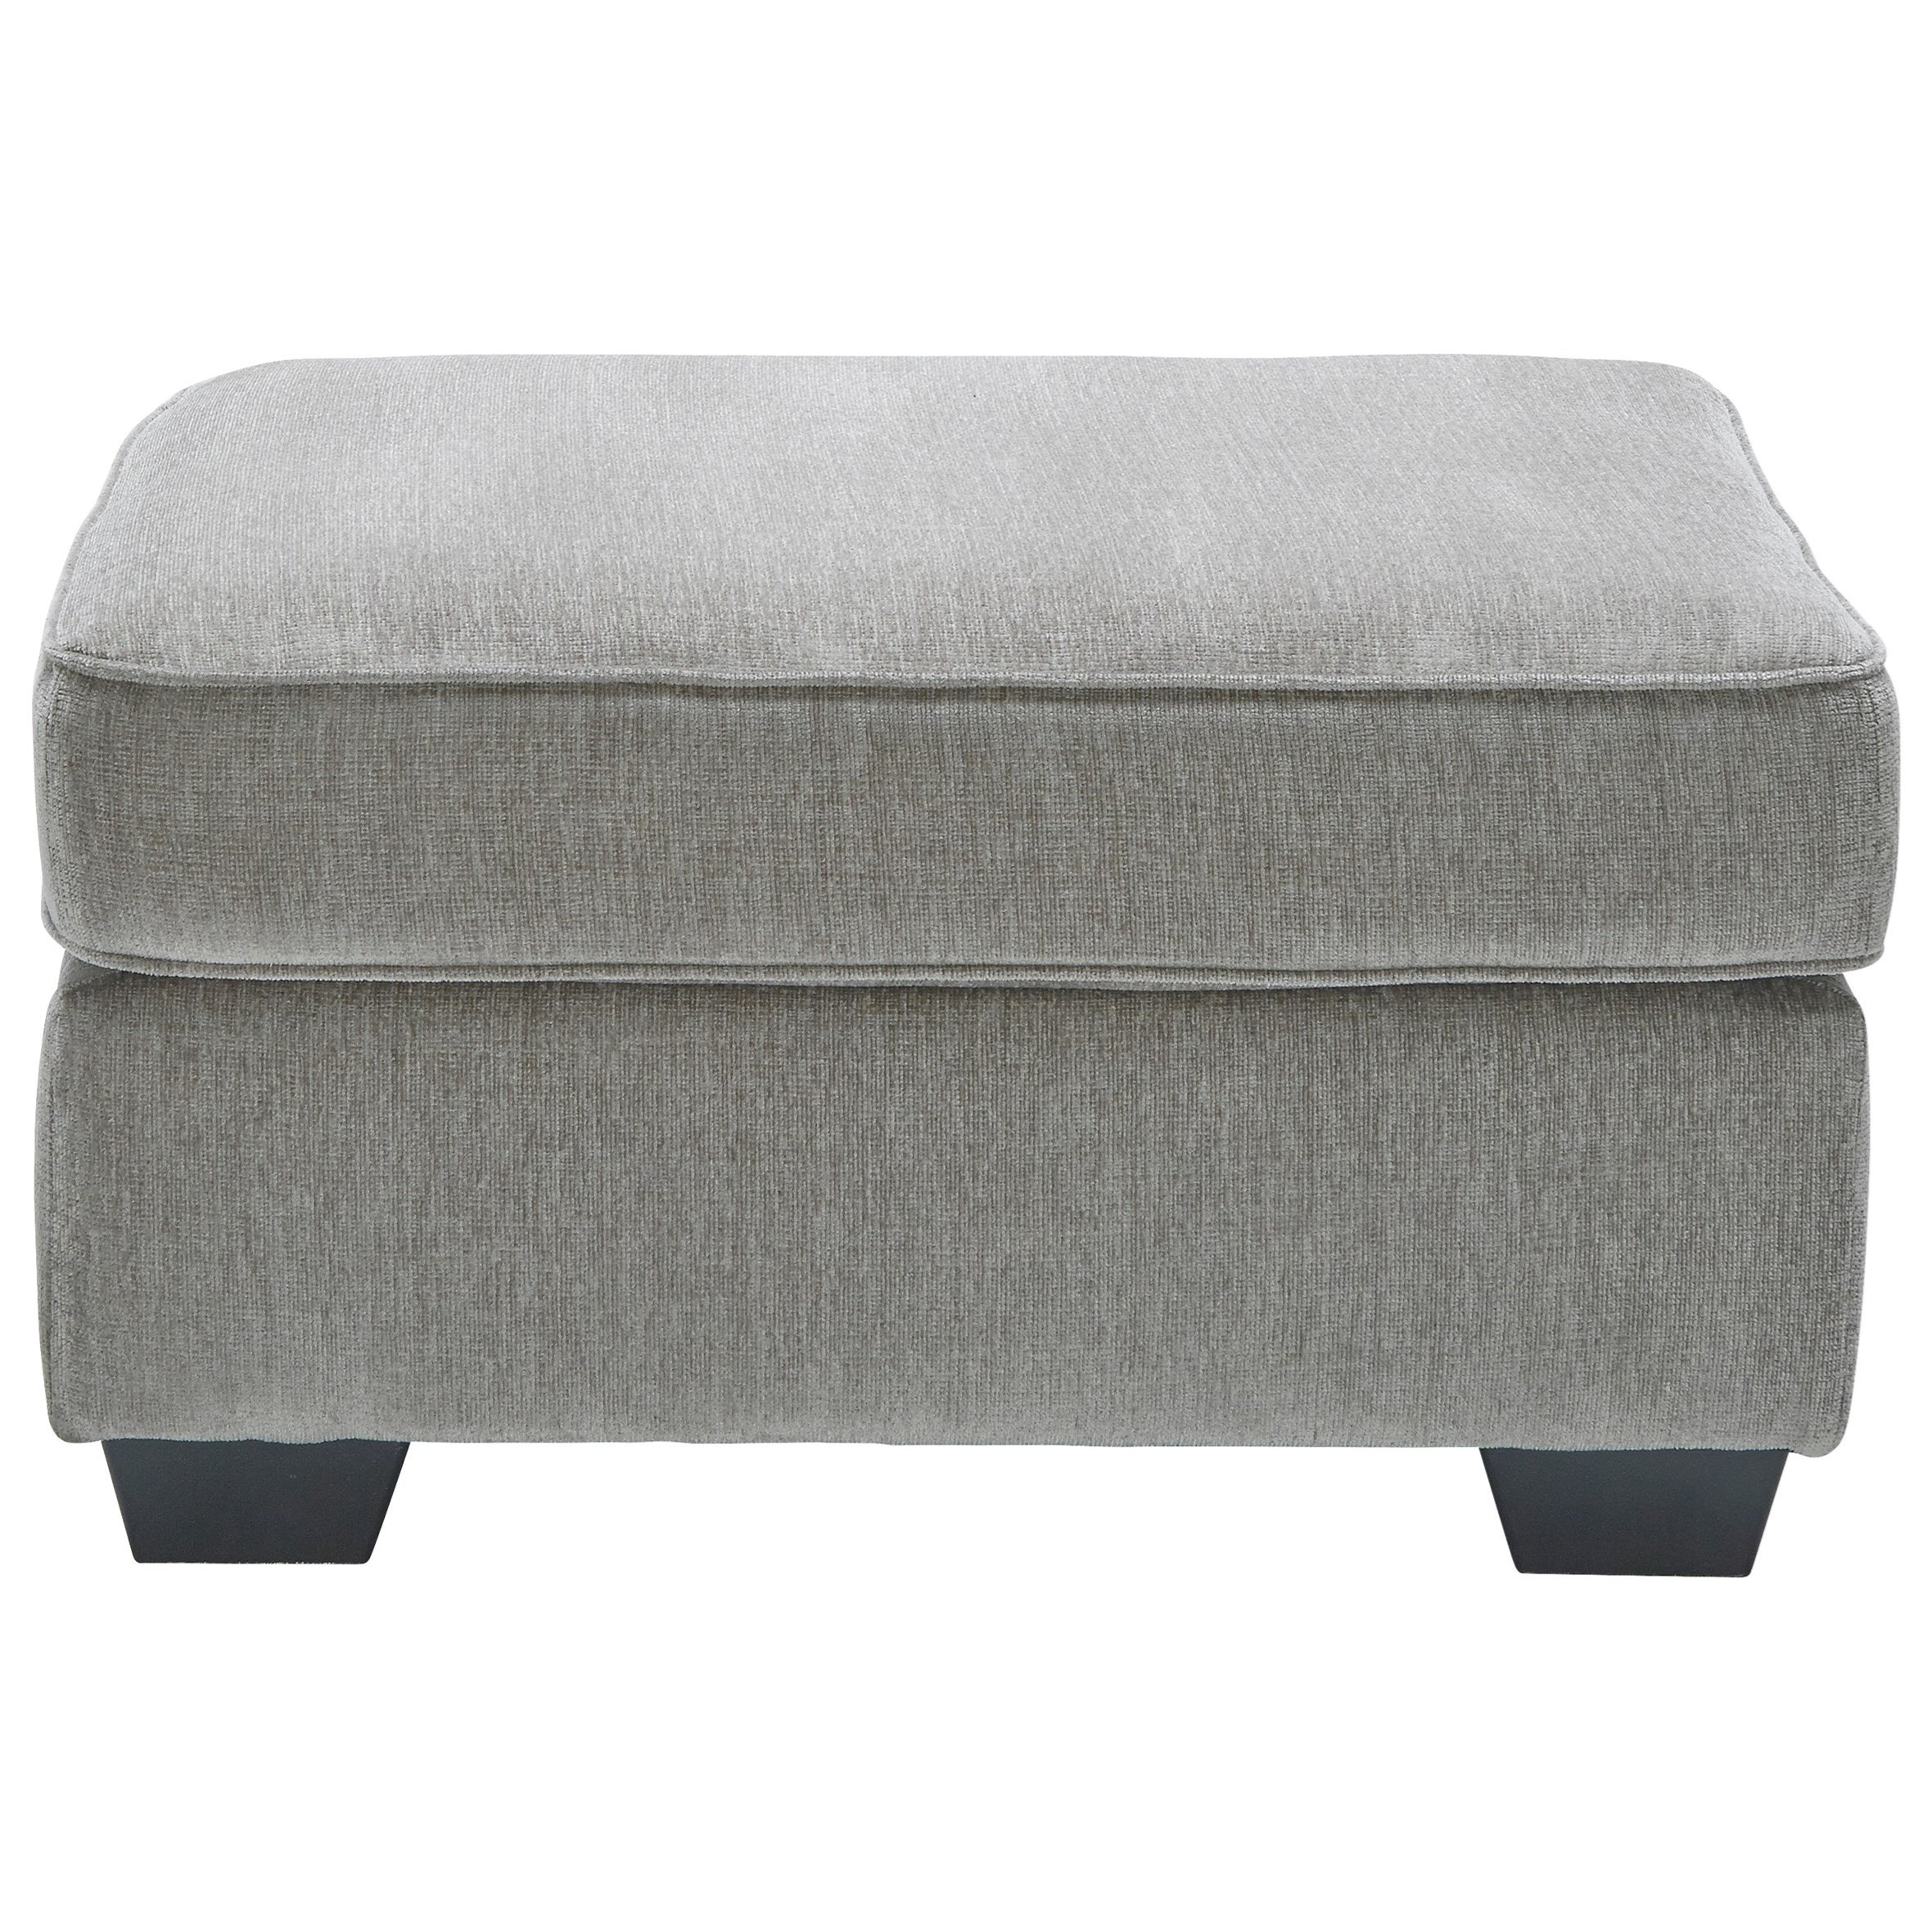 Altari Oversized Accent Ottoman by StyleLine at EFO Furniture Outlet